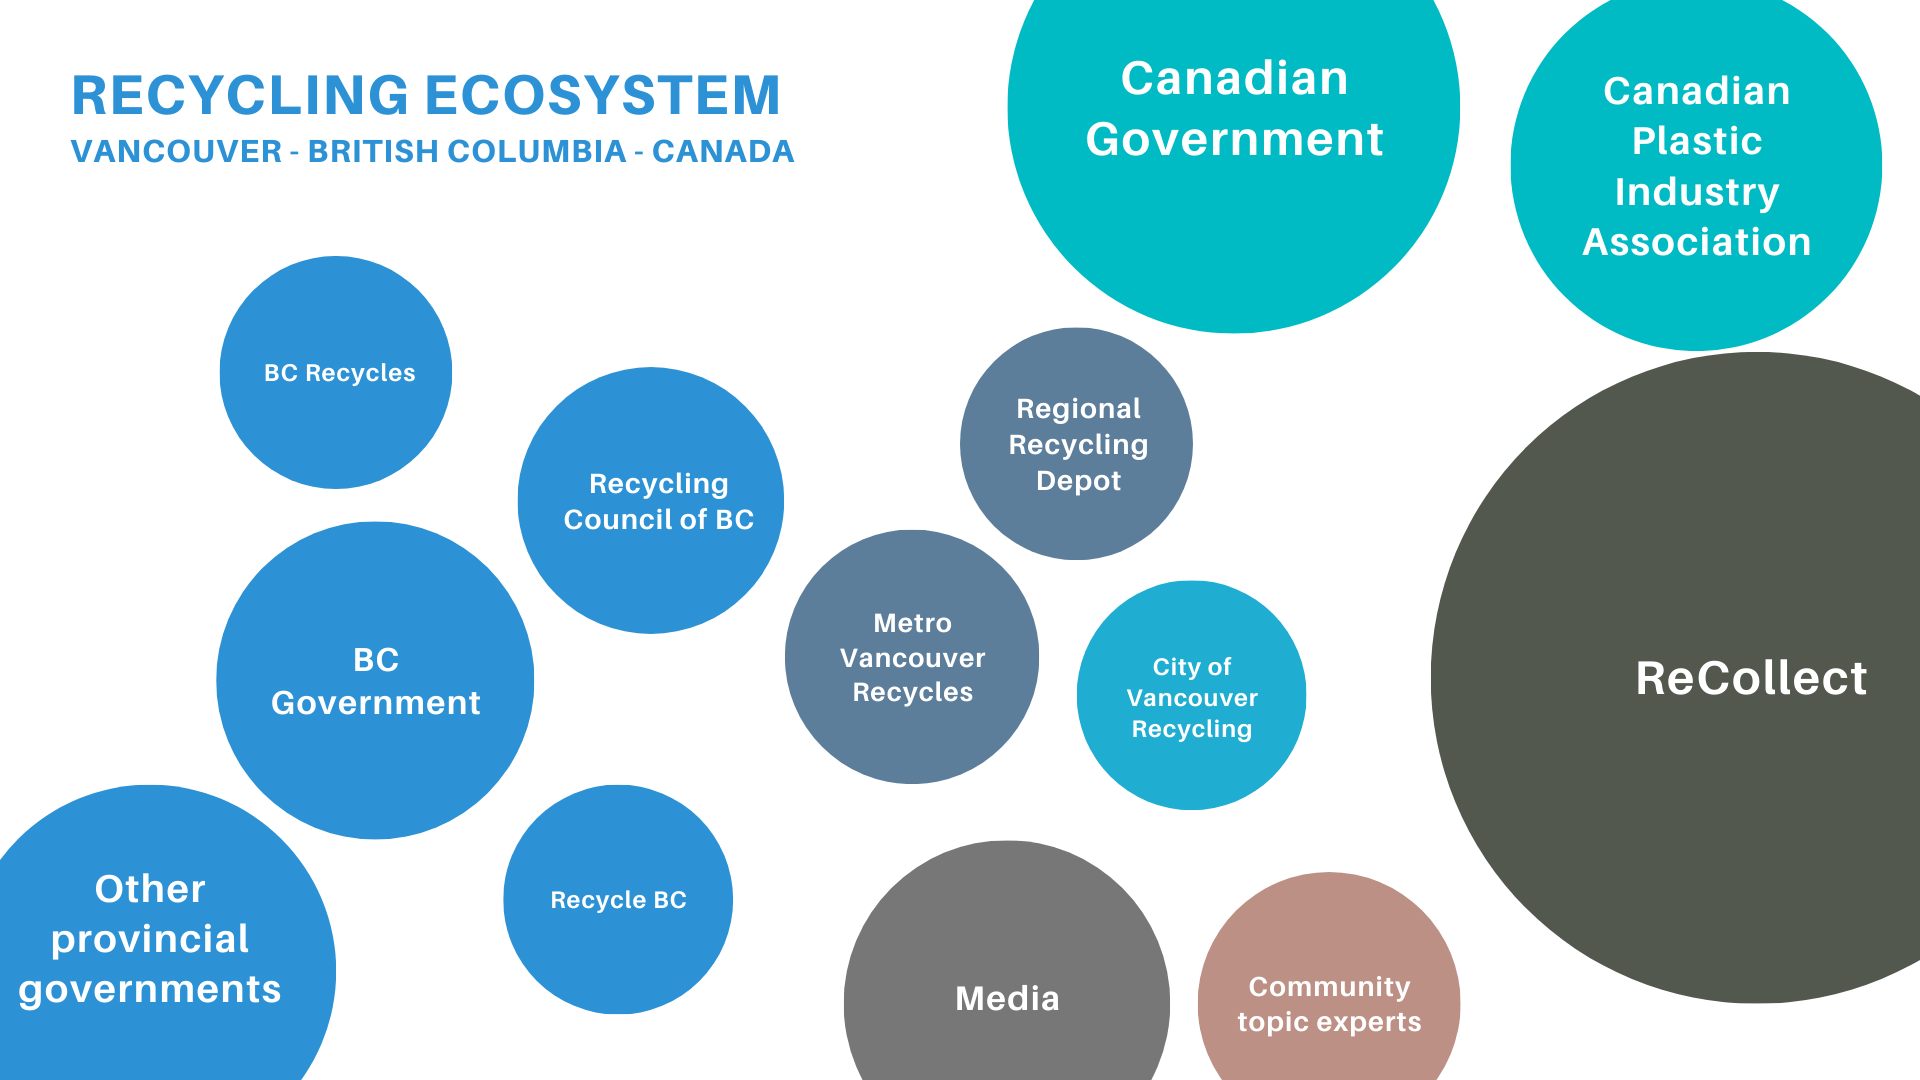 Recycling ecosystem map composed of different actors represented by circles, with an additional actor added.